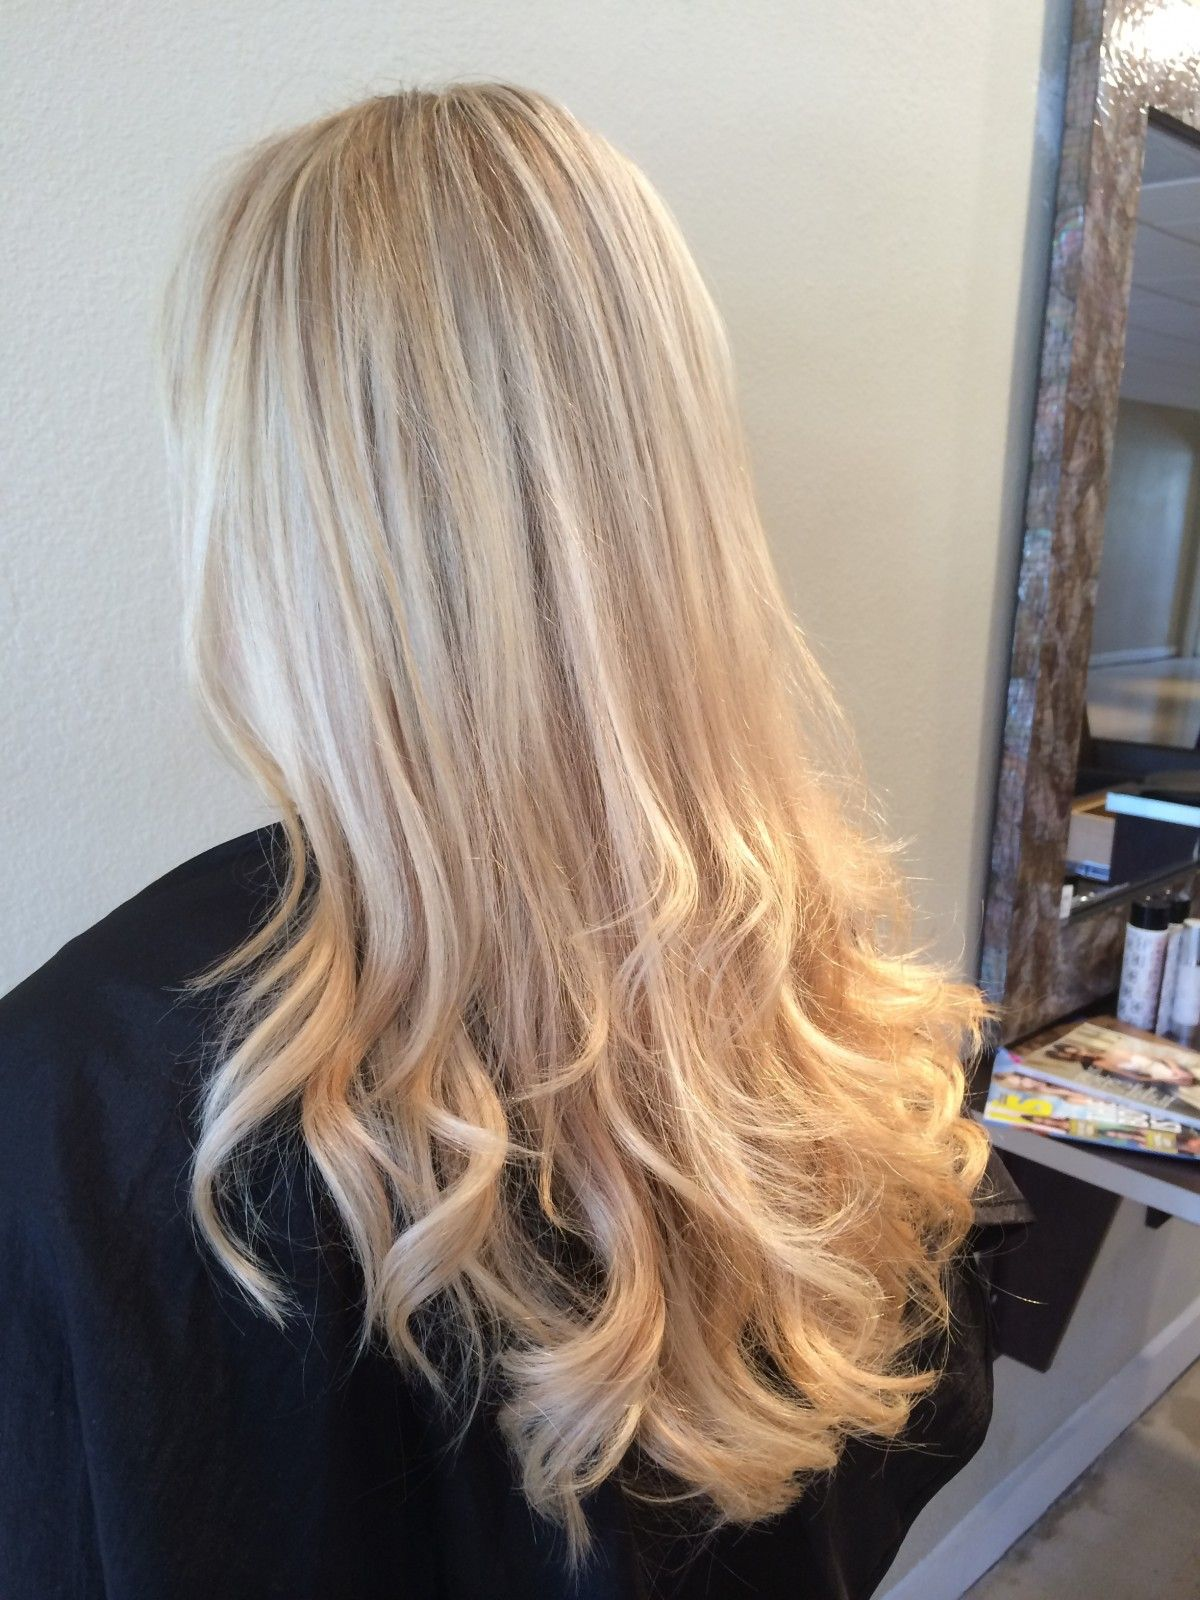 Blonde 2 Tone Highlights Full Head My Work Hair Hair